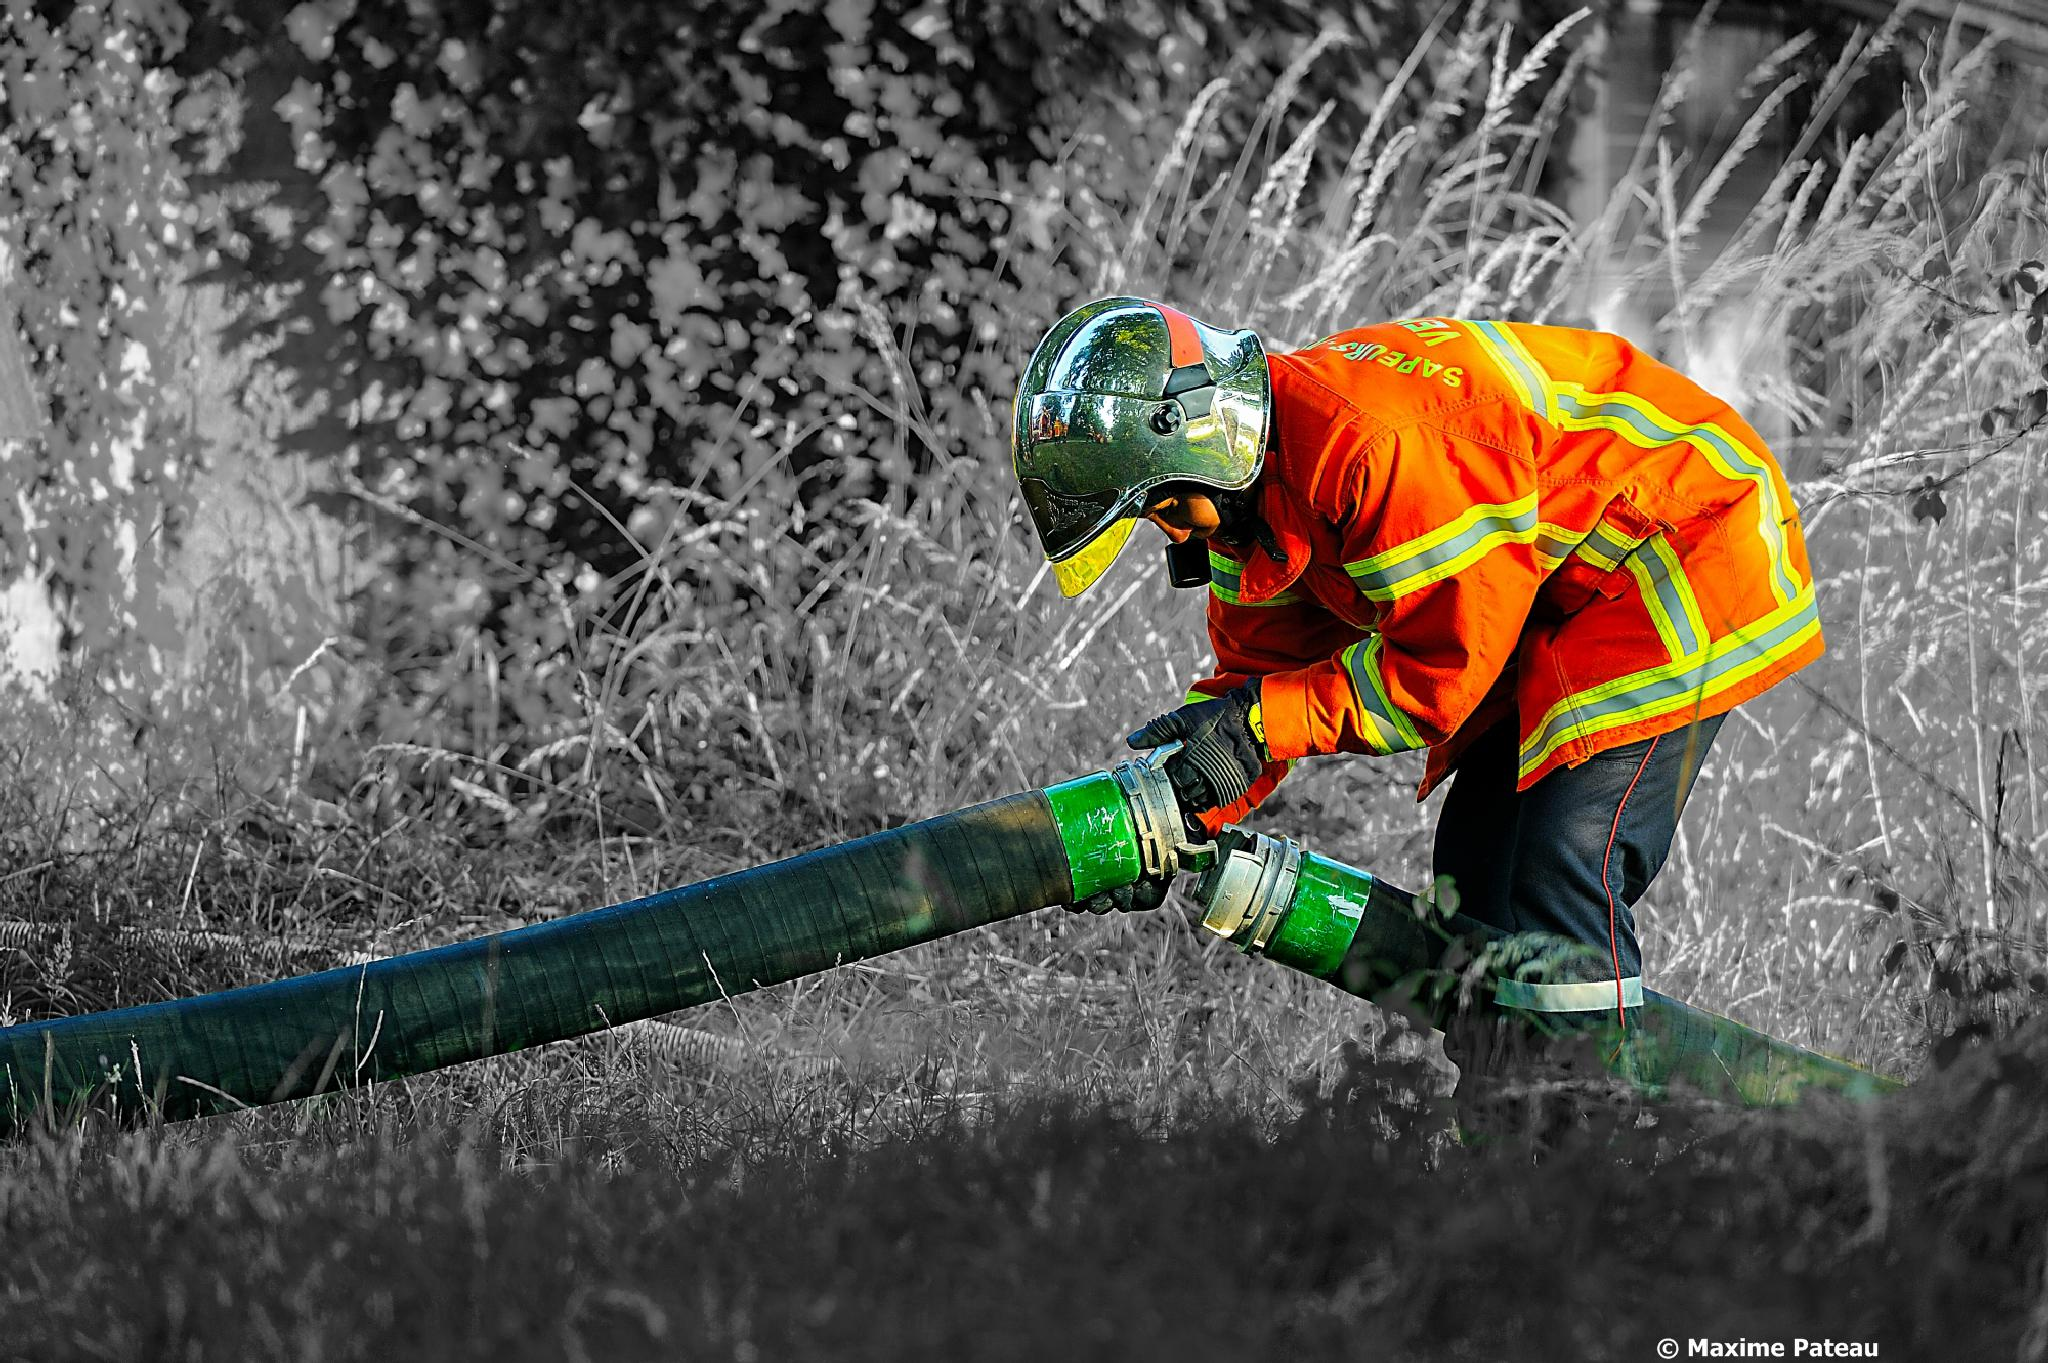 Fireman at work by Maxime Pateau > #Photosplus